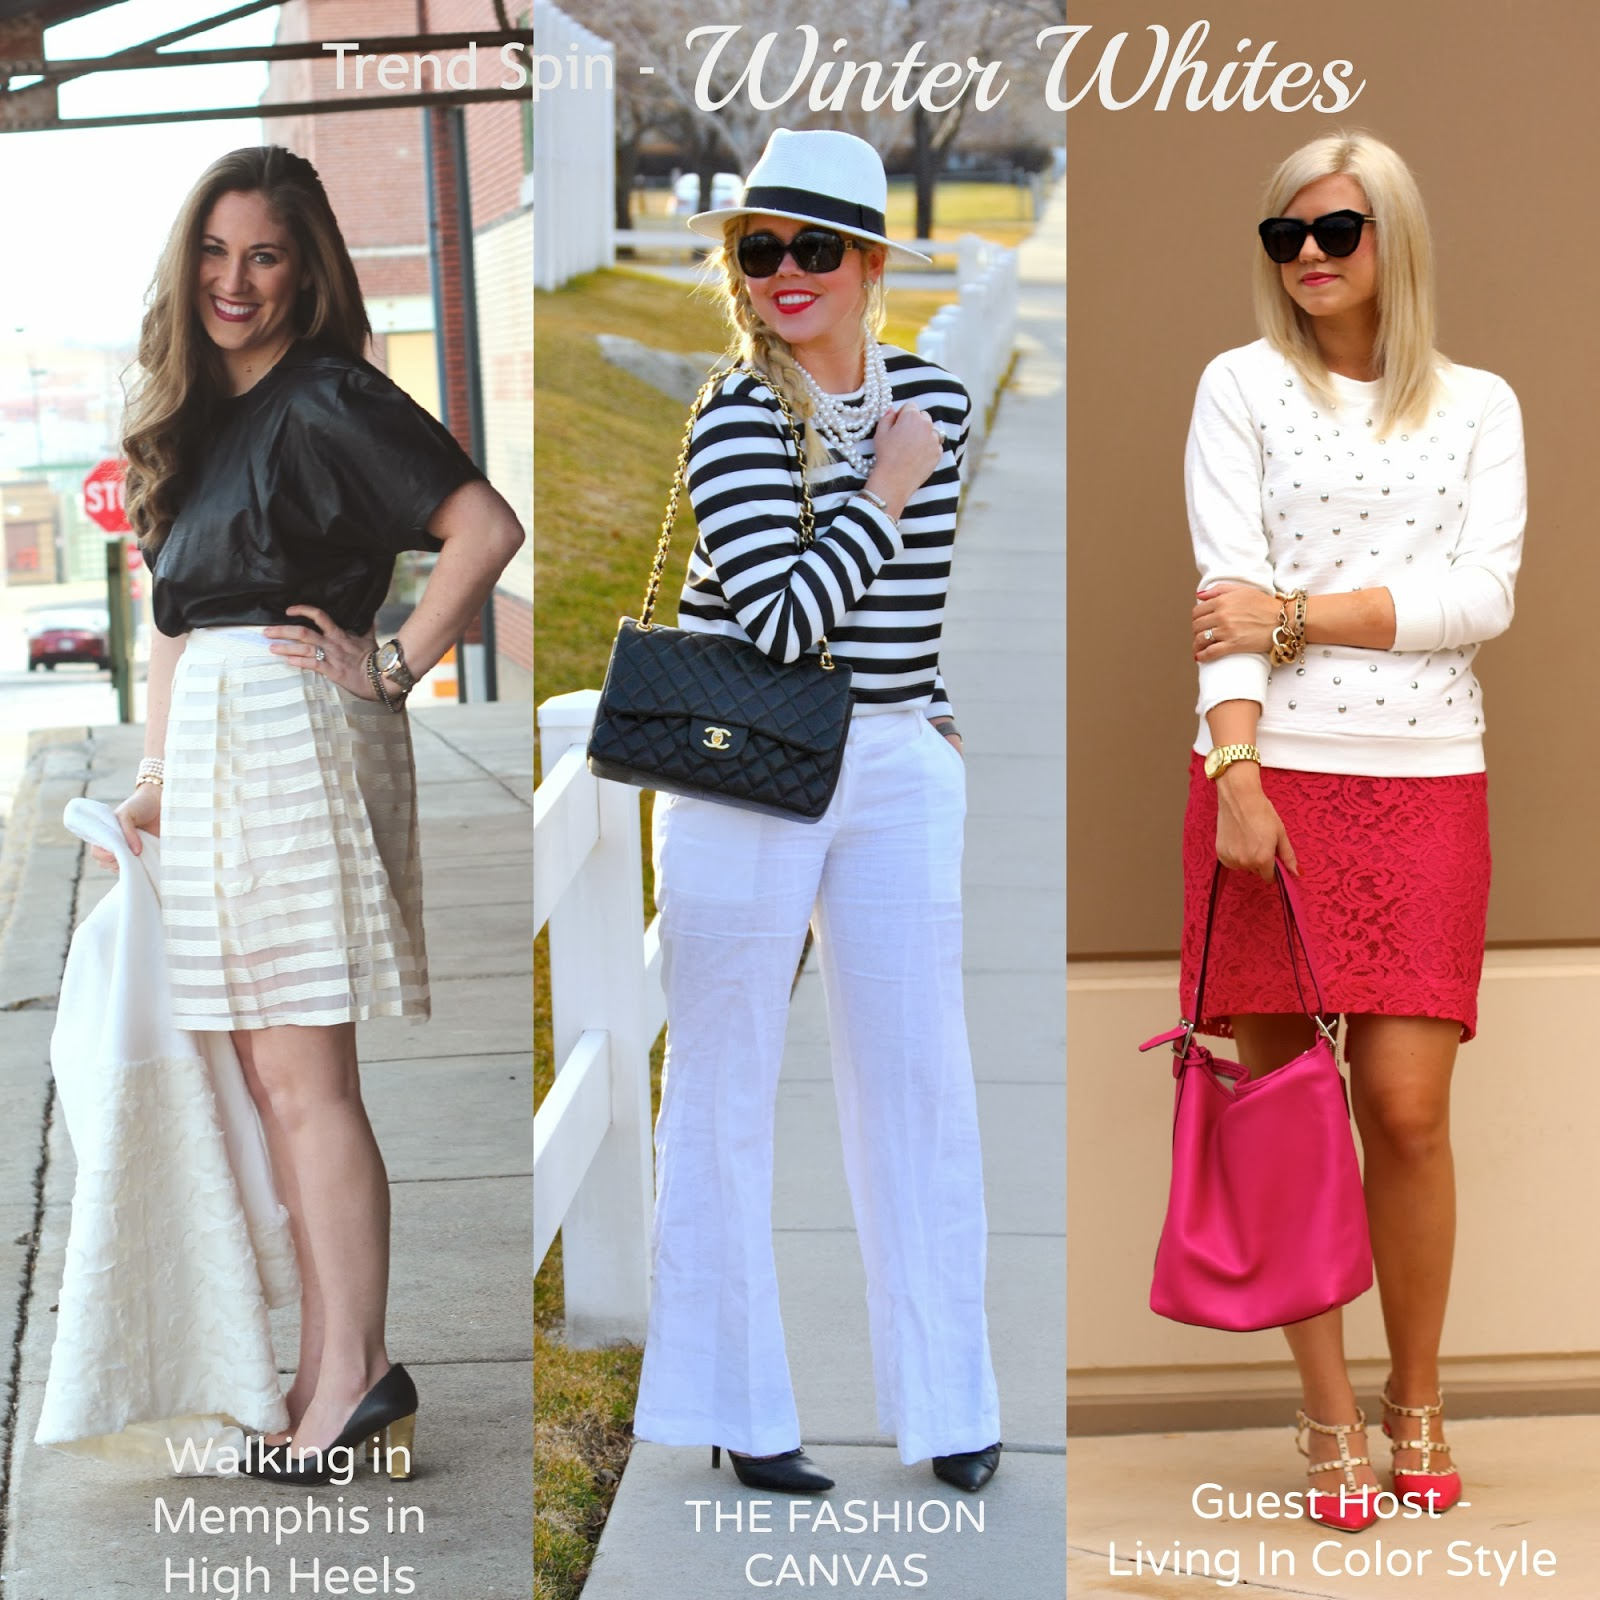 Trend Spin Link-Up | Winter Whites